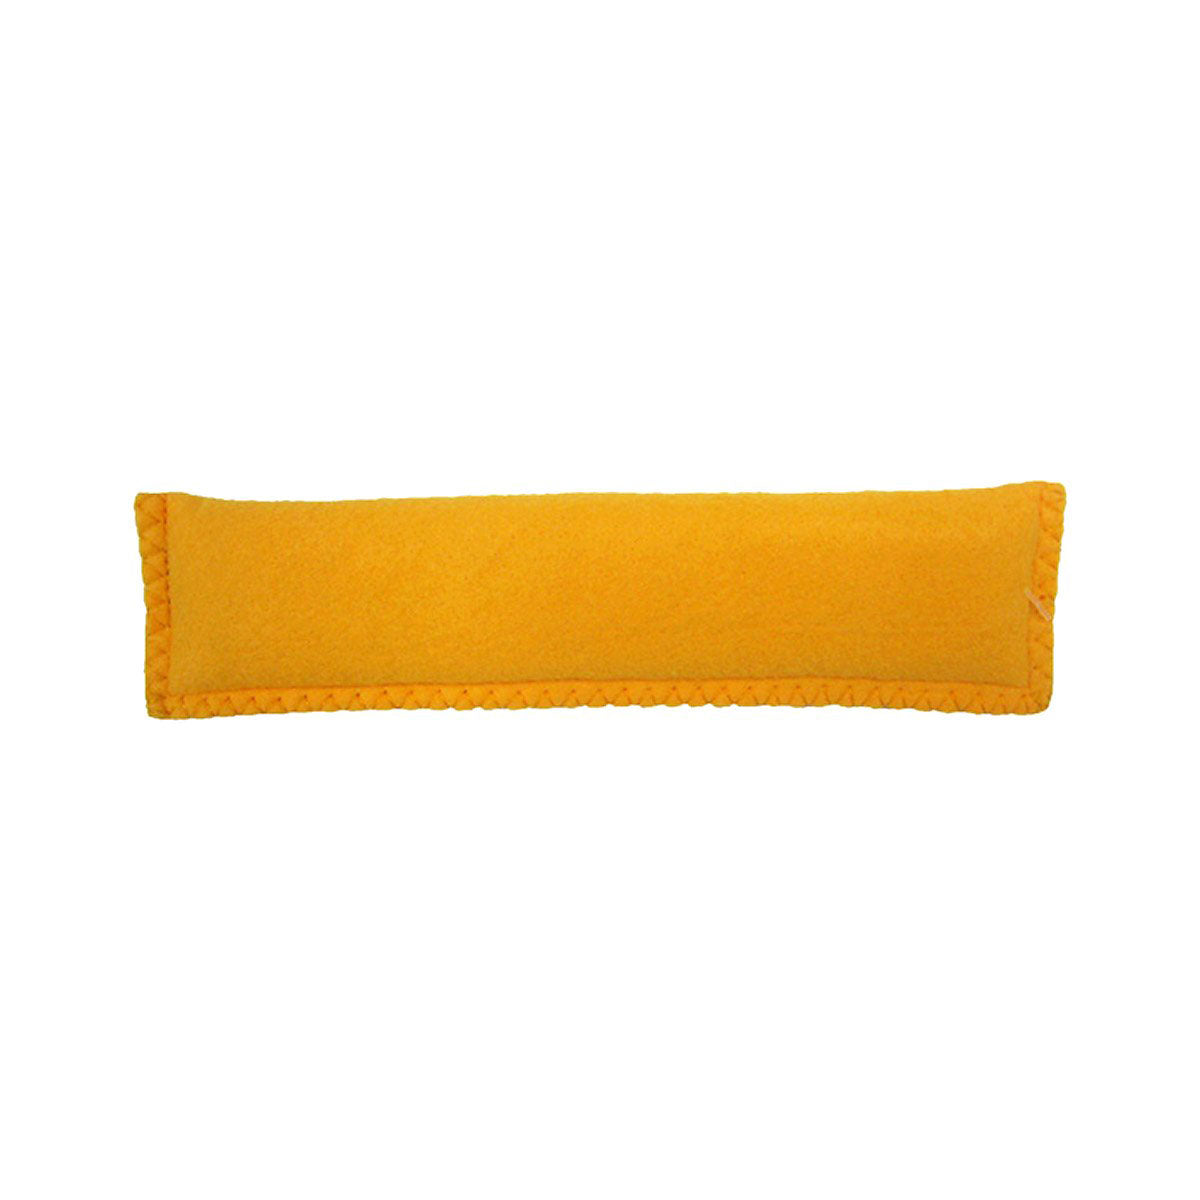 Sham Goalie Sweatband - Original